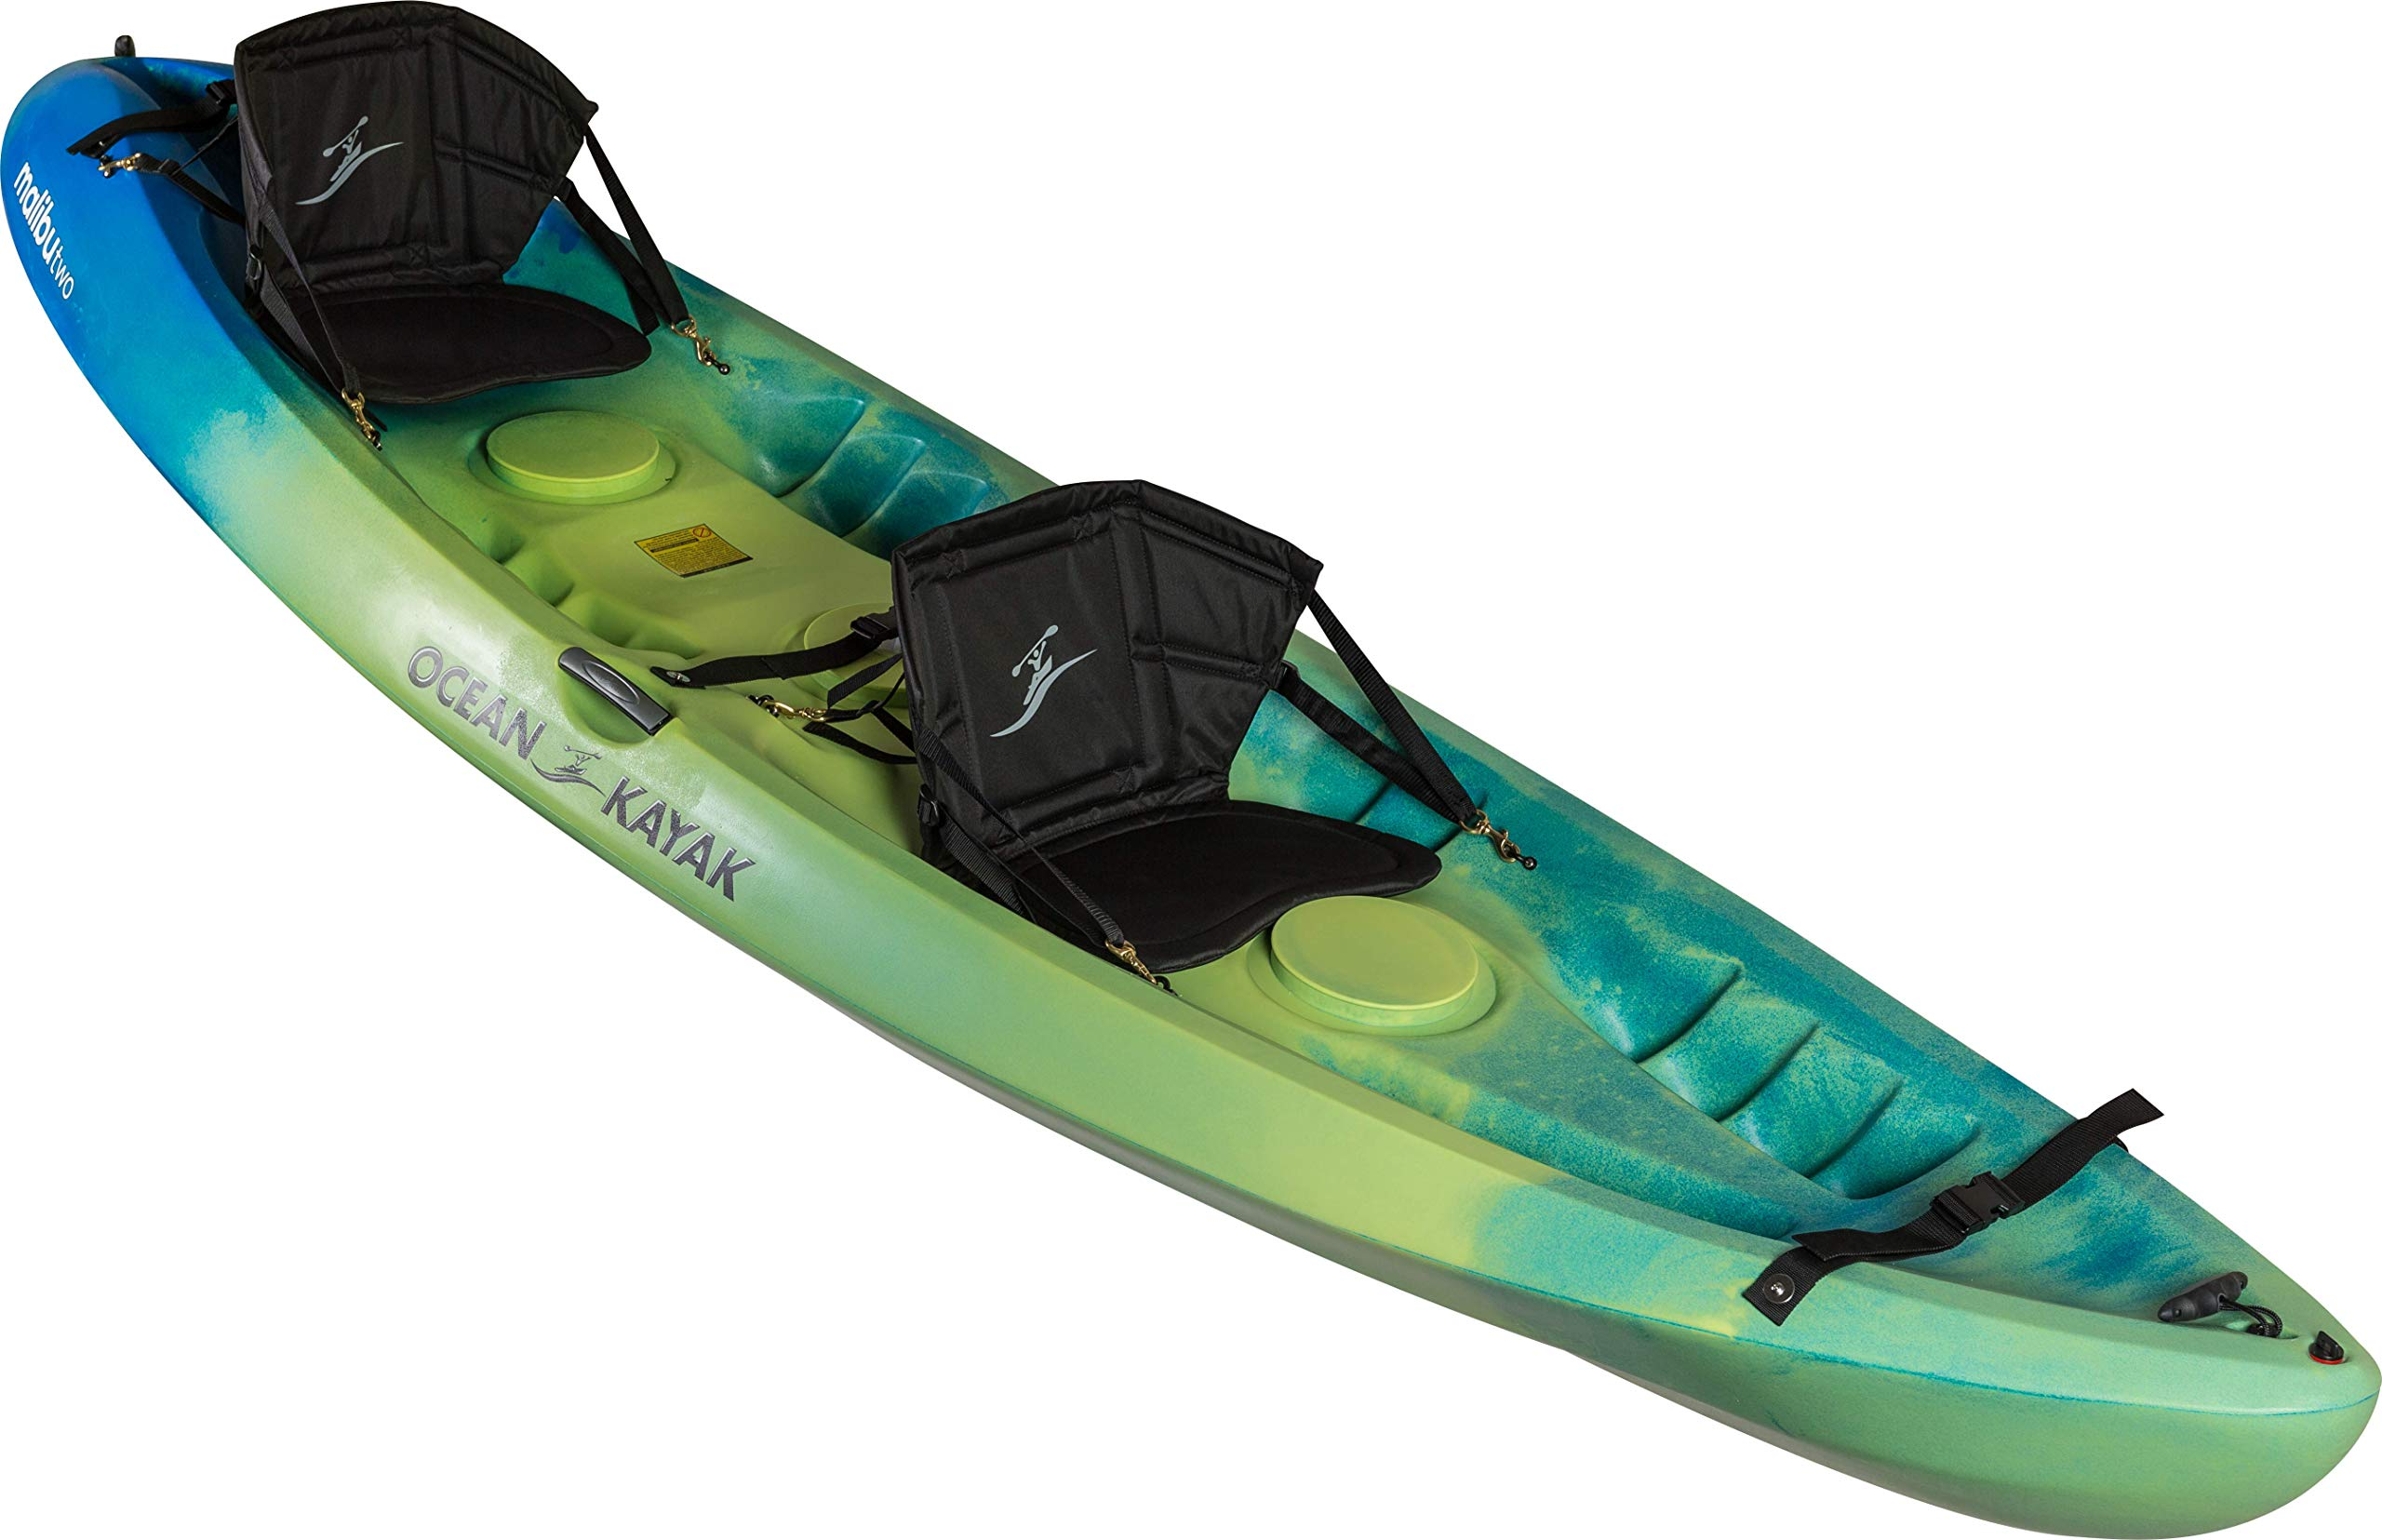 Ocean Kayak Malibu Two Tandem Sit-On-Top Recreational Kayak (Ahi, 12-Feet) by Ocean Kayak